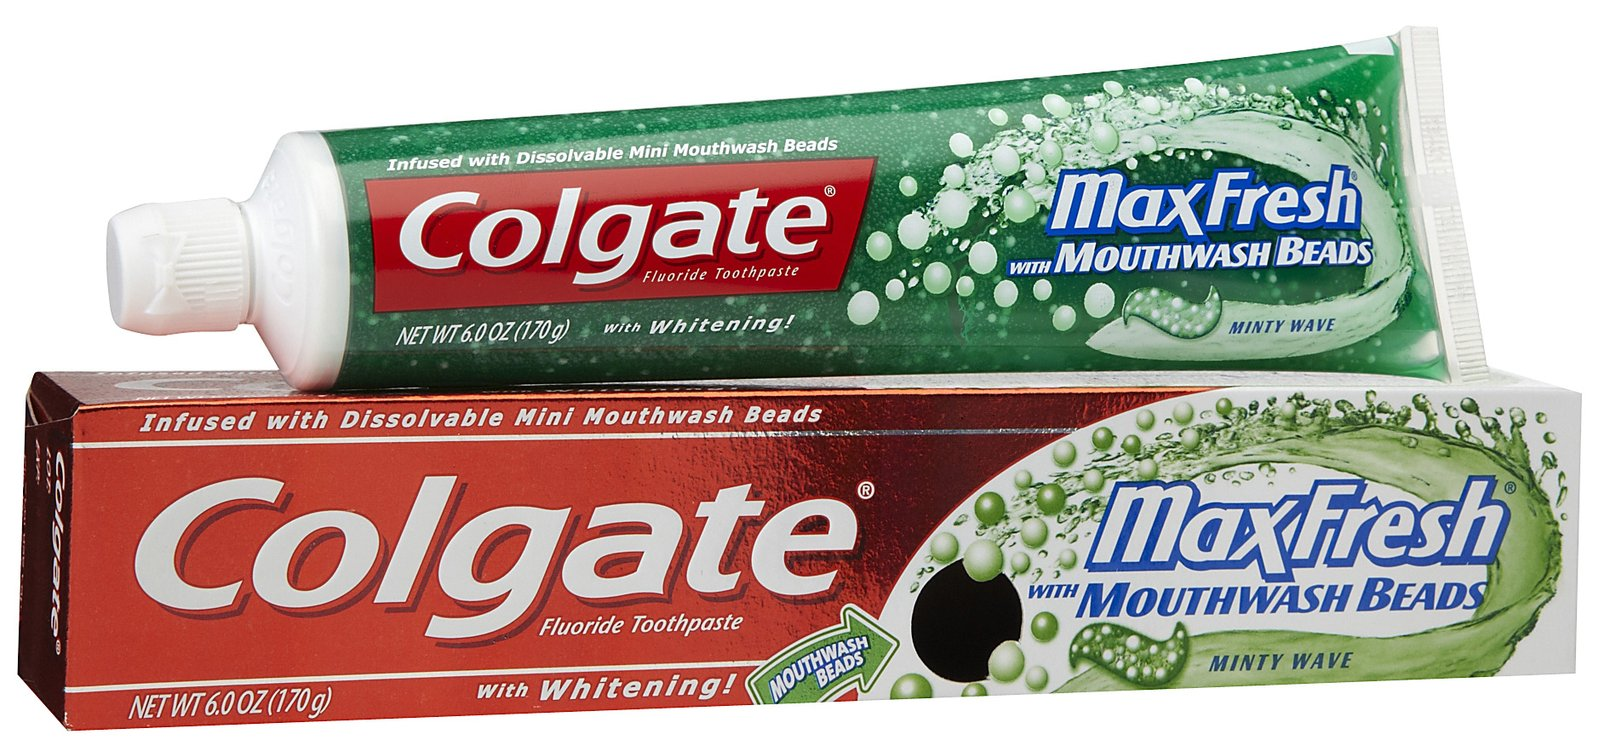 colgate max fresh global brand roll out case number 9 508 009 case study analysis West virginia public service commission : the public service commission uses imaging equipment to obtain an accurate picture of documents filed in a case.